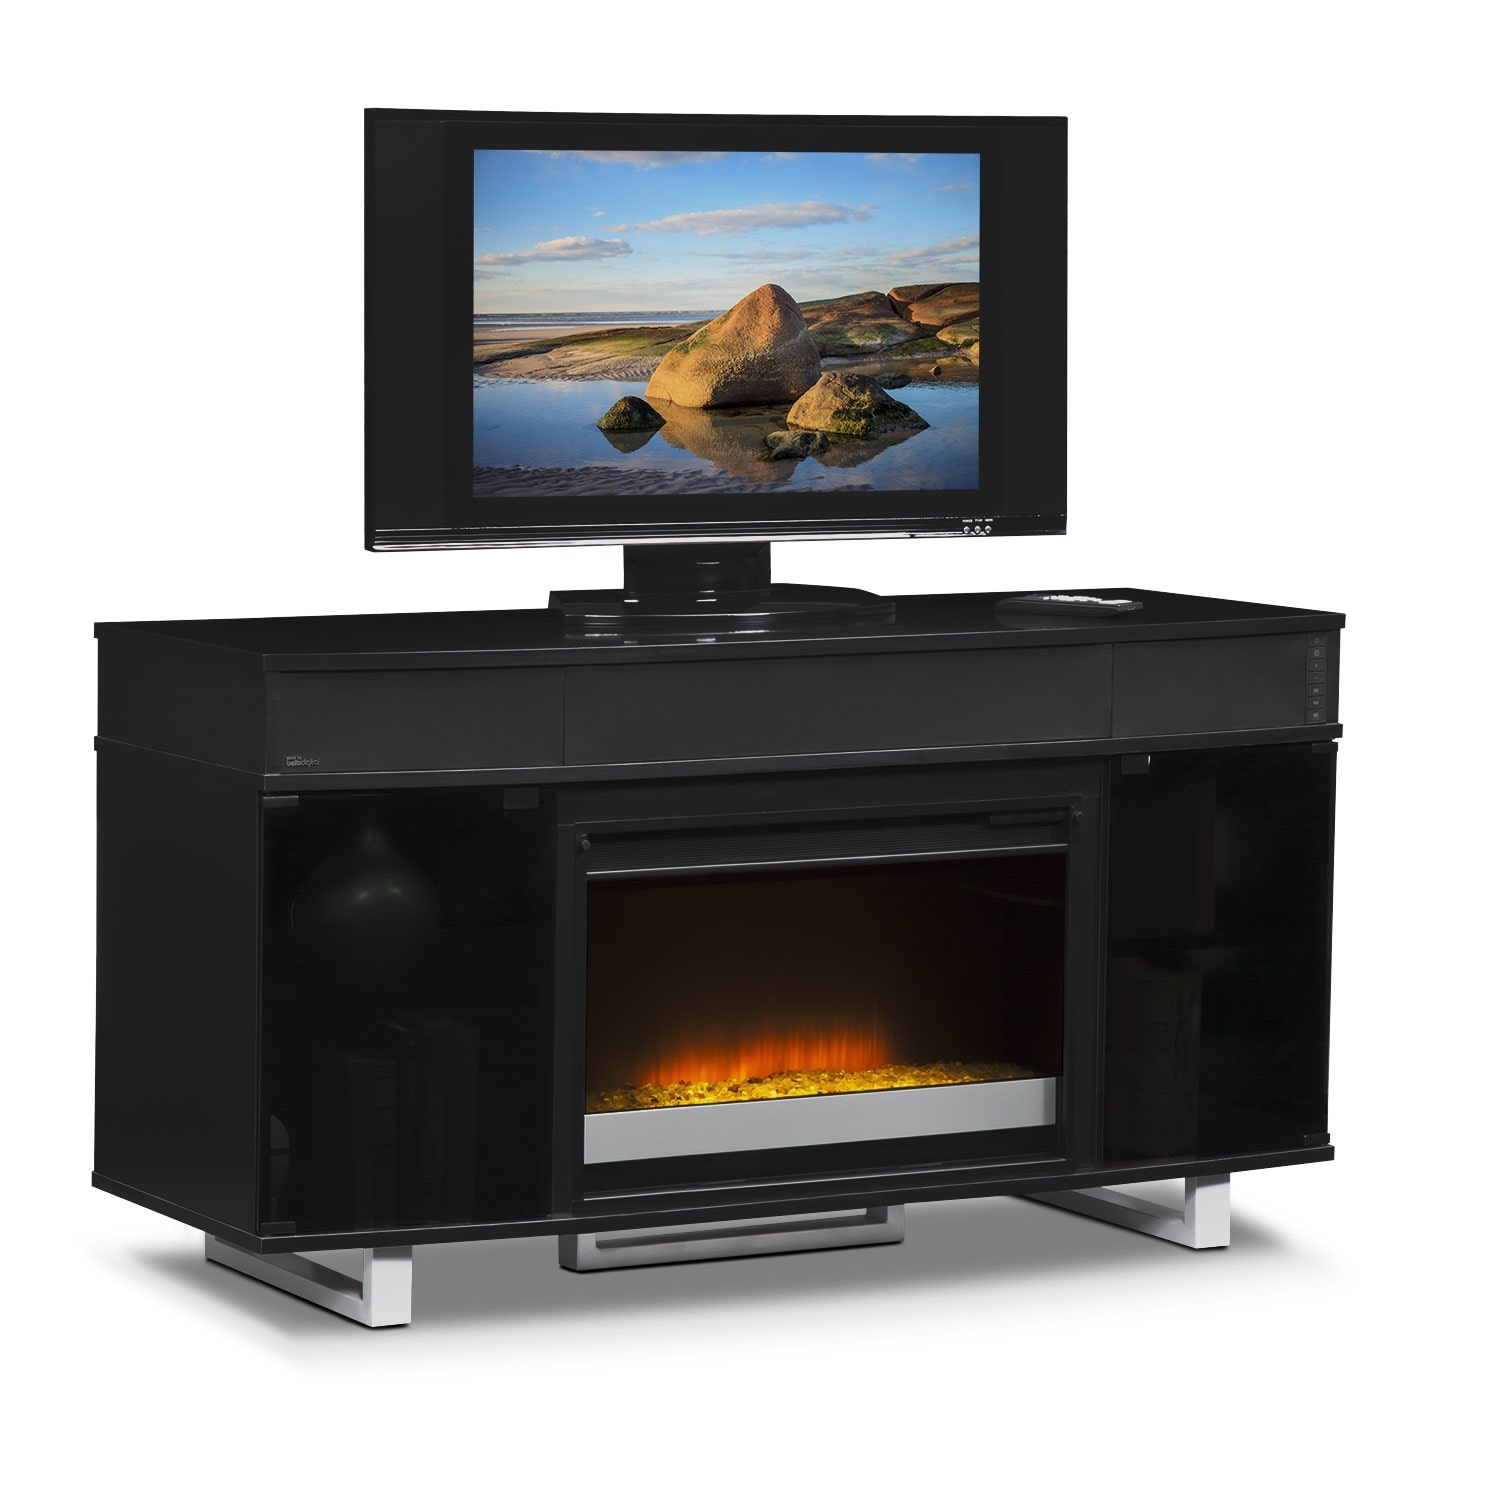 pacer 56 contemporary fireplace tv stand with sound bar